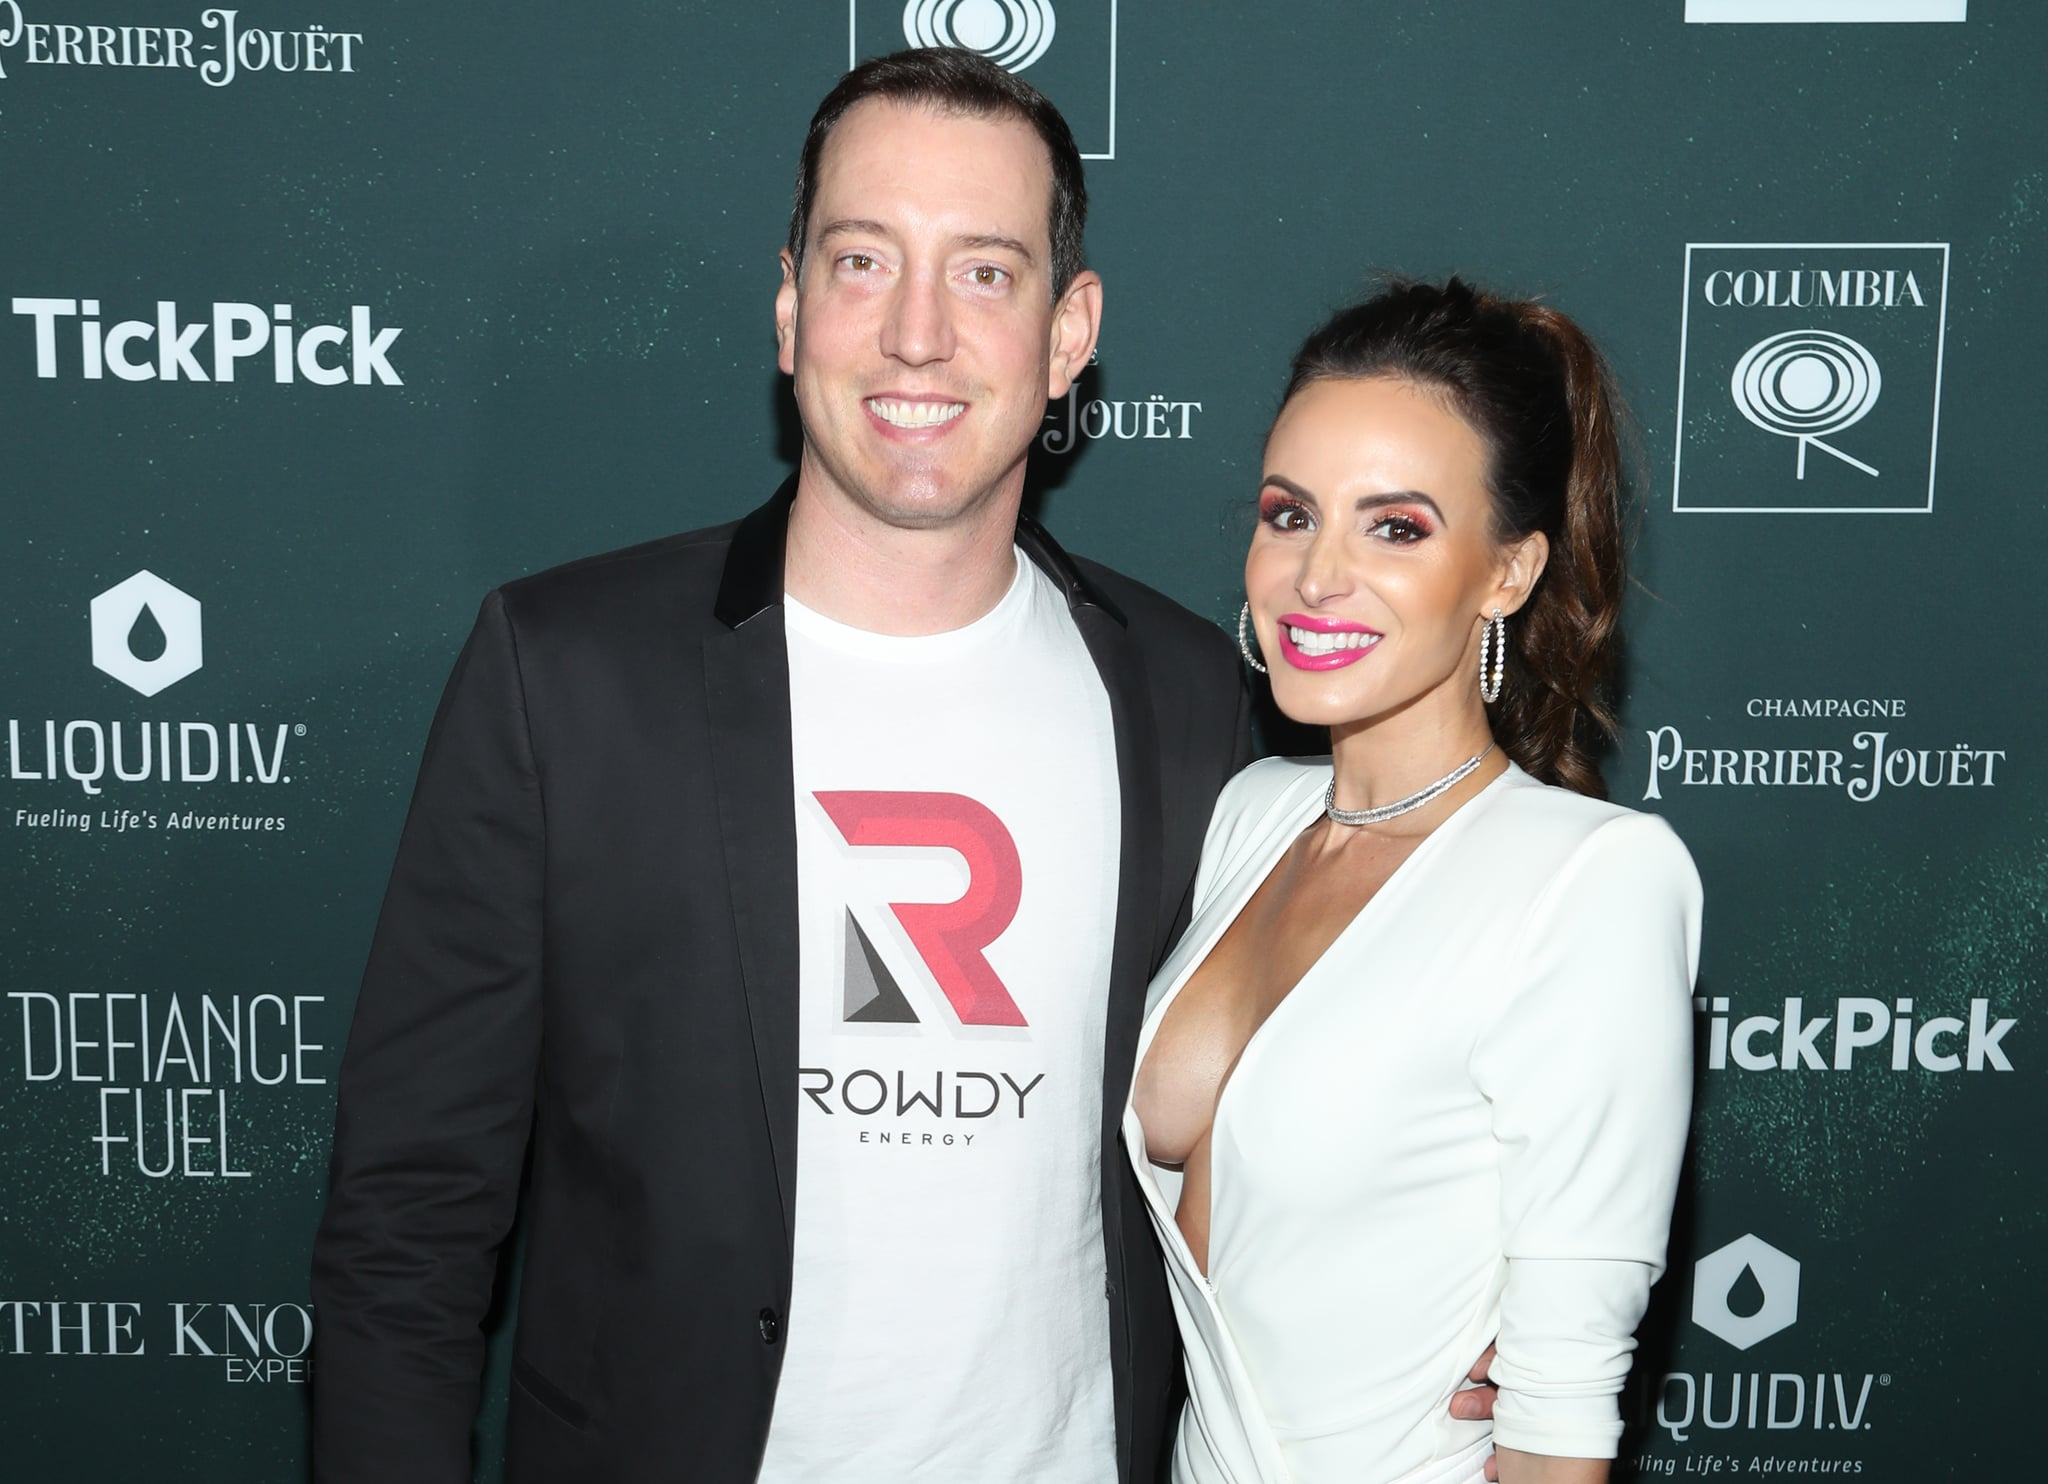 MIAMI, FLORIDA - FEBRUARY 01: Kyle Busch and Samantha Busch attend the 2020 MAXIM Big Game Experience on February 01, 2020 in Miami, Florida. (Photo by Jerritt Clark/Getty Images for MAXIM)